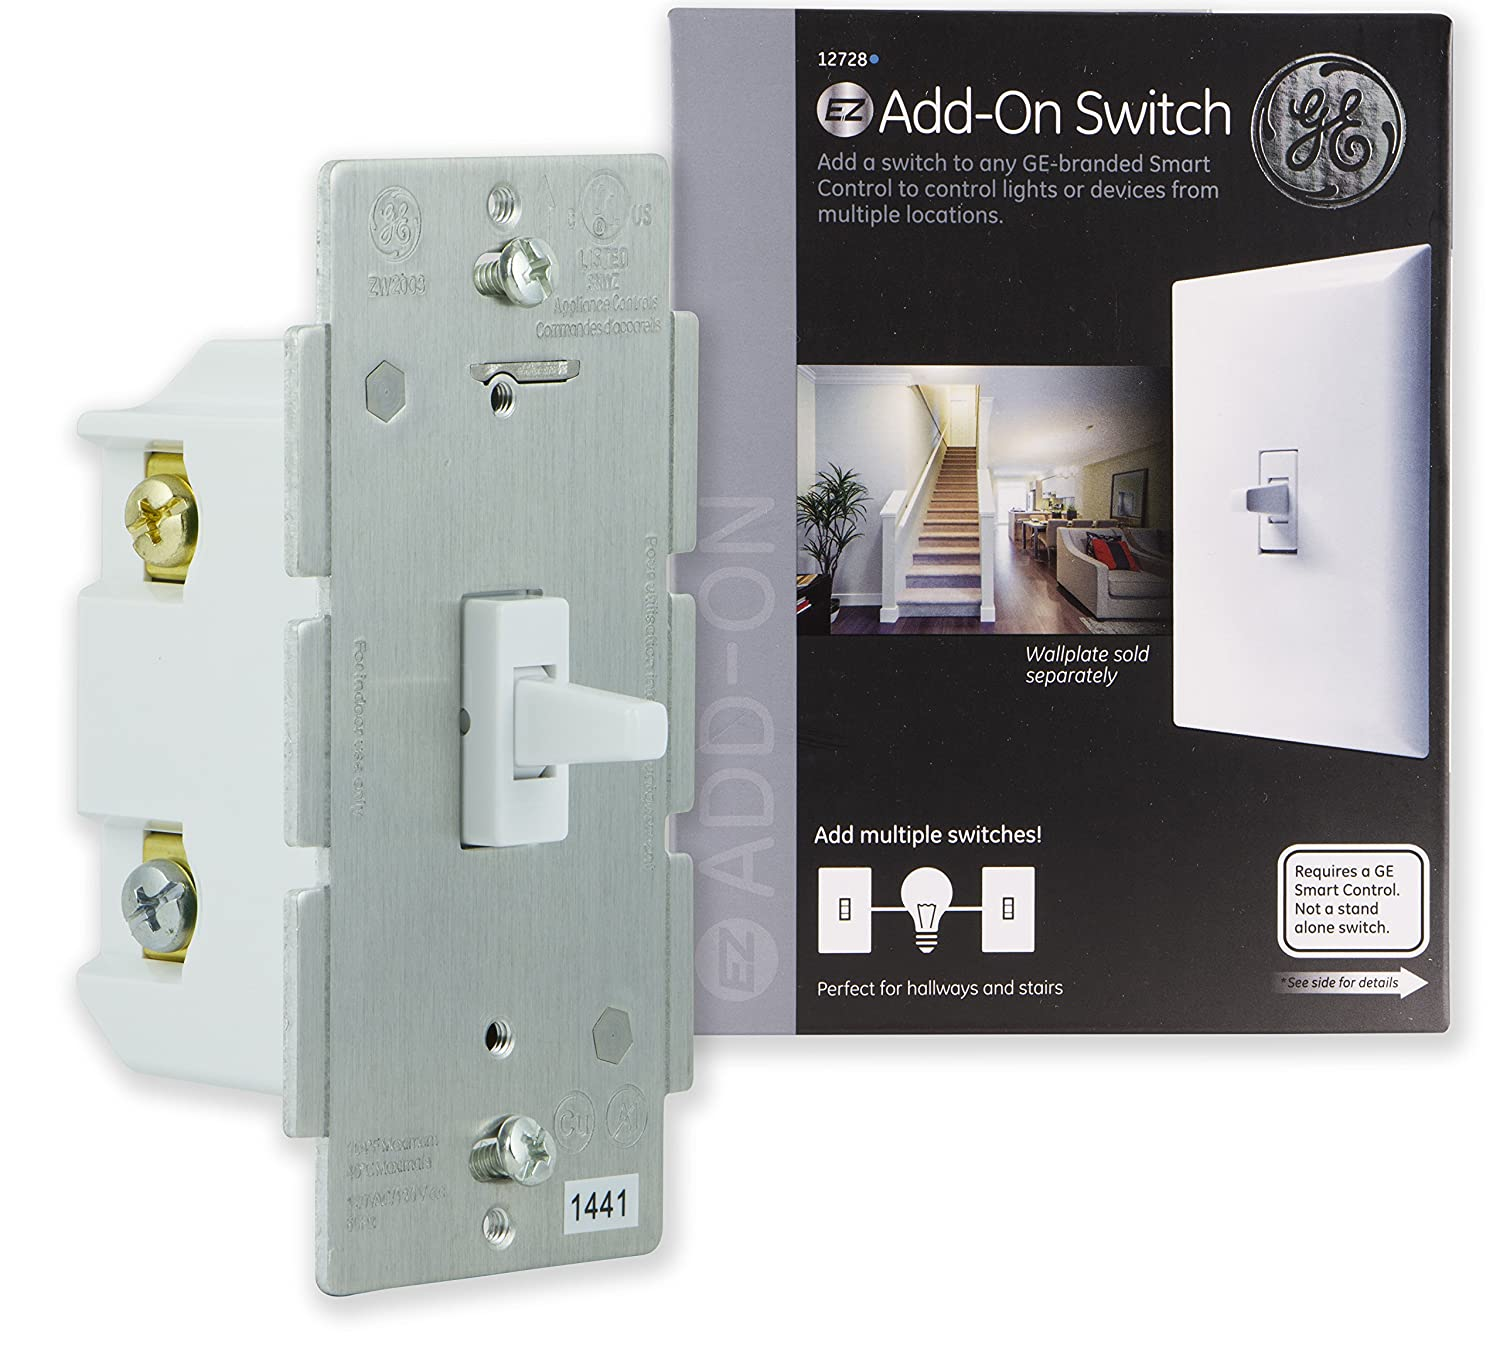 Ge Add On Toggle Style Switch Only For Z Wave Zigbee And Four Way Wiring Diagram With Load Mid Run Bluetooth Wireless Smart Lighting Controls White Not A Standalone 12728